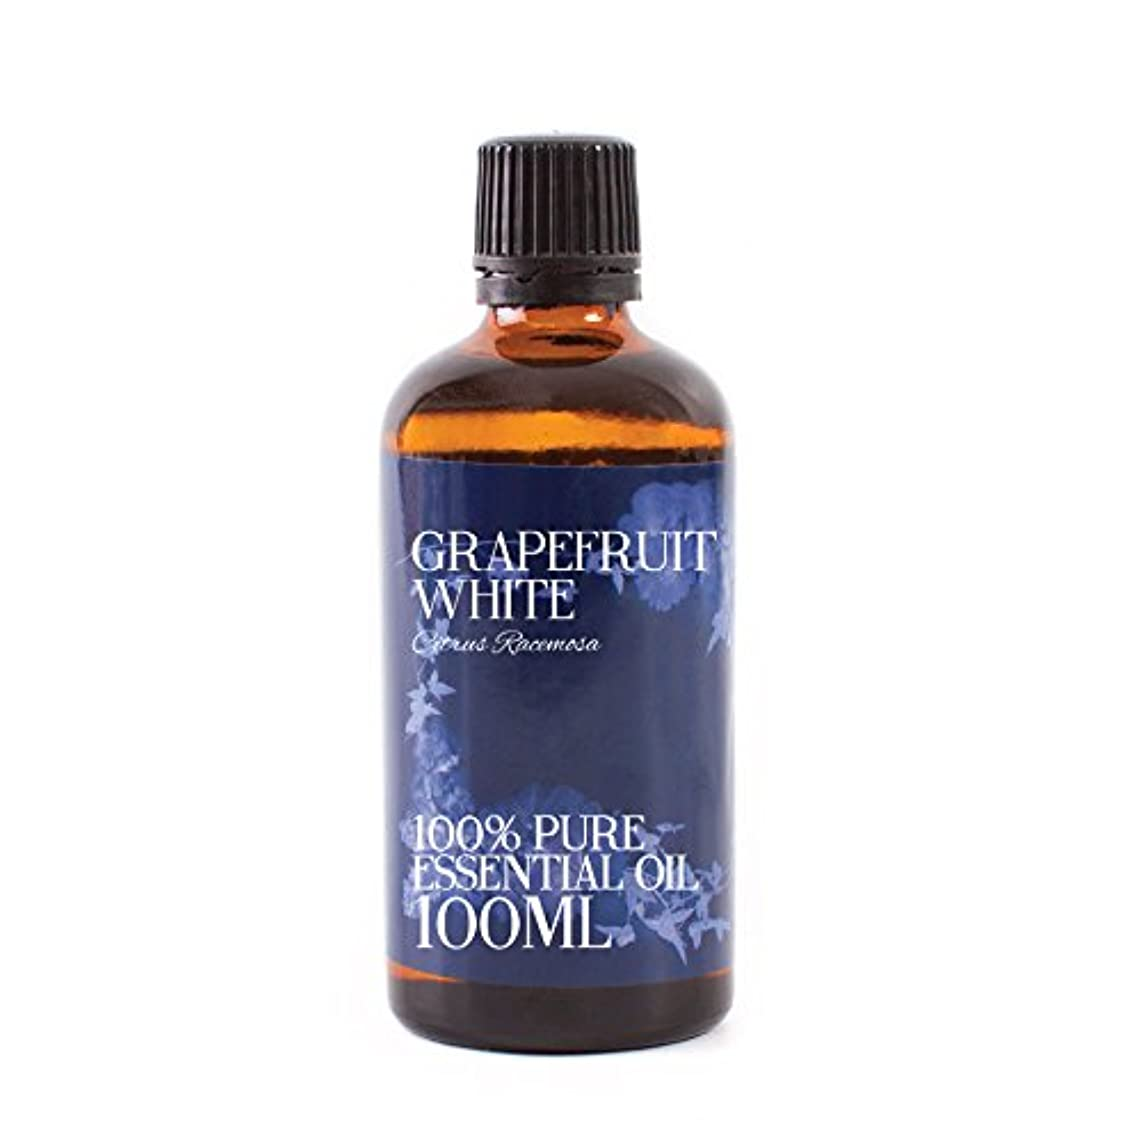 ツーリスト飽和する広げるMystic Moments | Grapefruit White Essential Oil - 100ml - 100% Pure